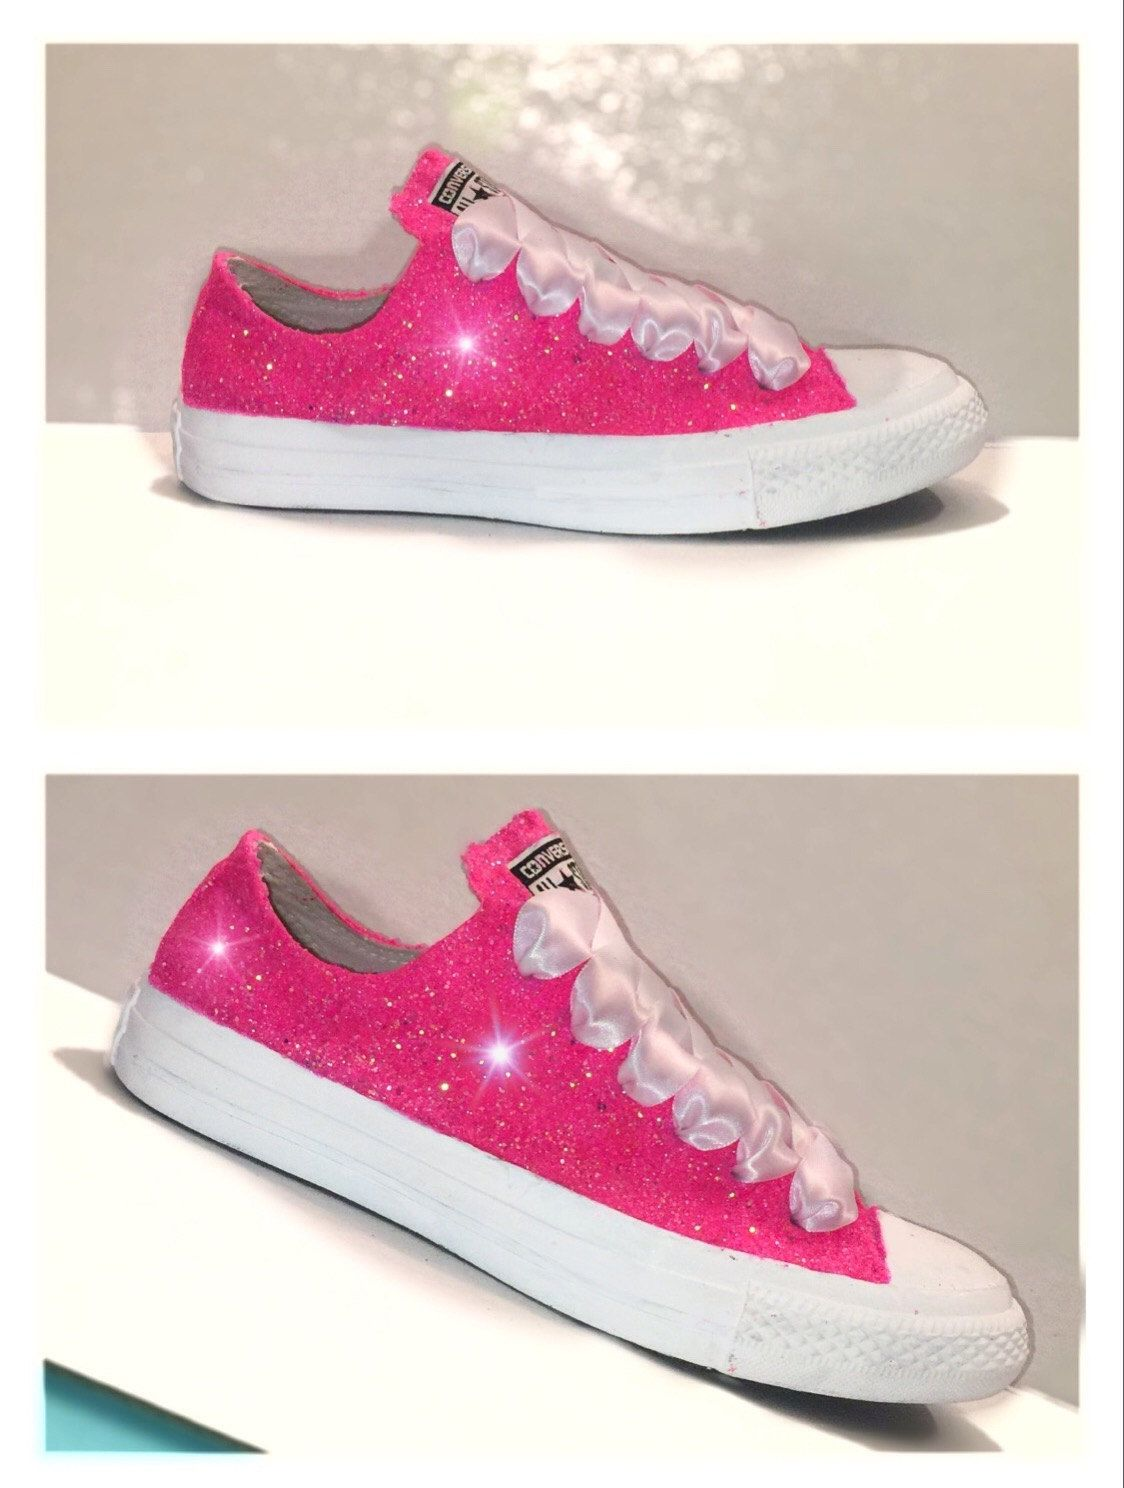 Women s Converse all star shoes handmade Sparkly glitter hot pink bright  chucks sneakers tennis wedding bride prom dance by CrystalCleatss on Etsy e62f373169